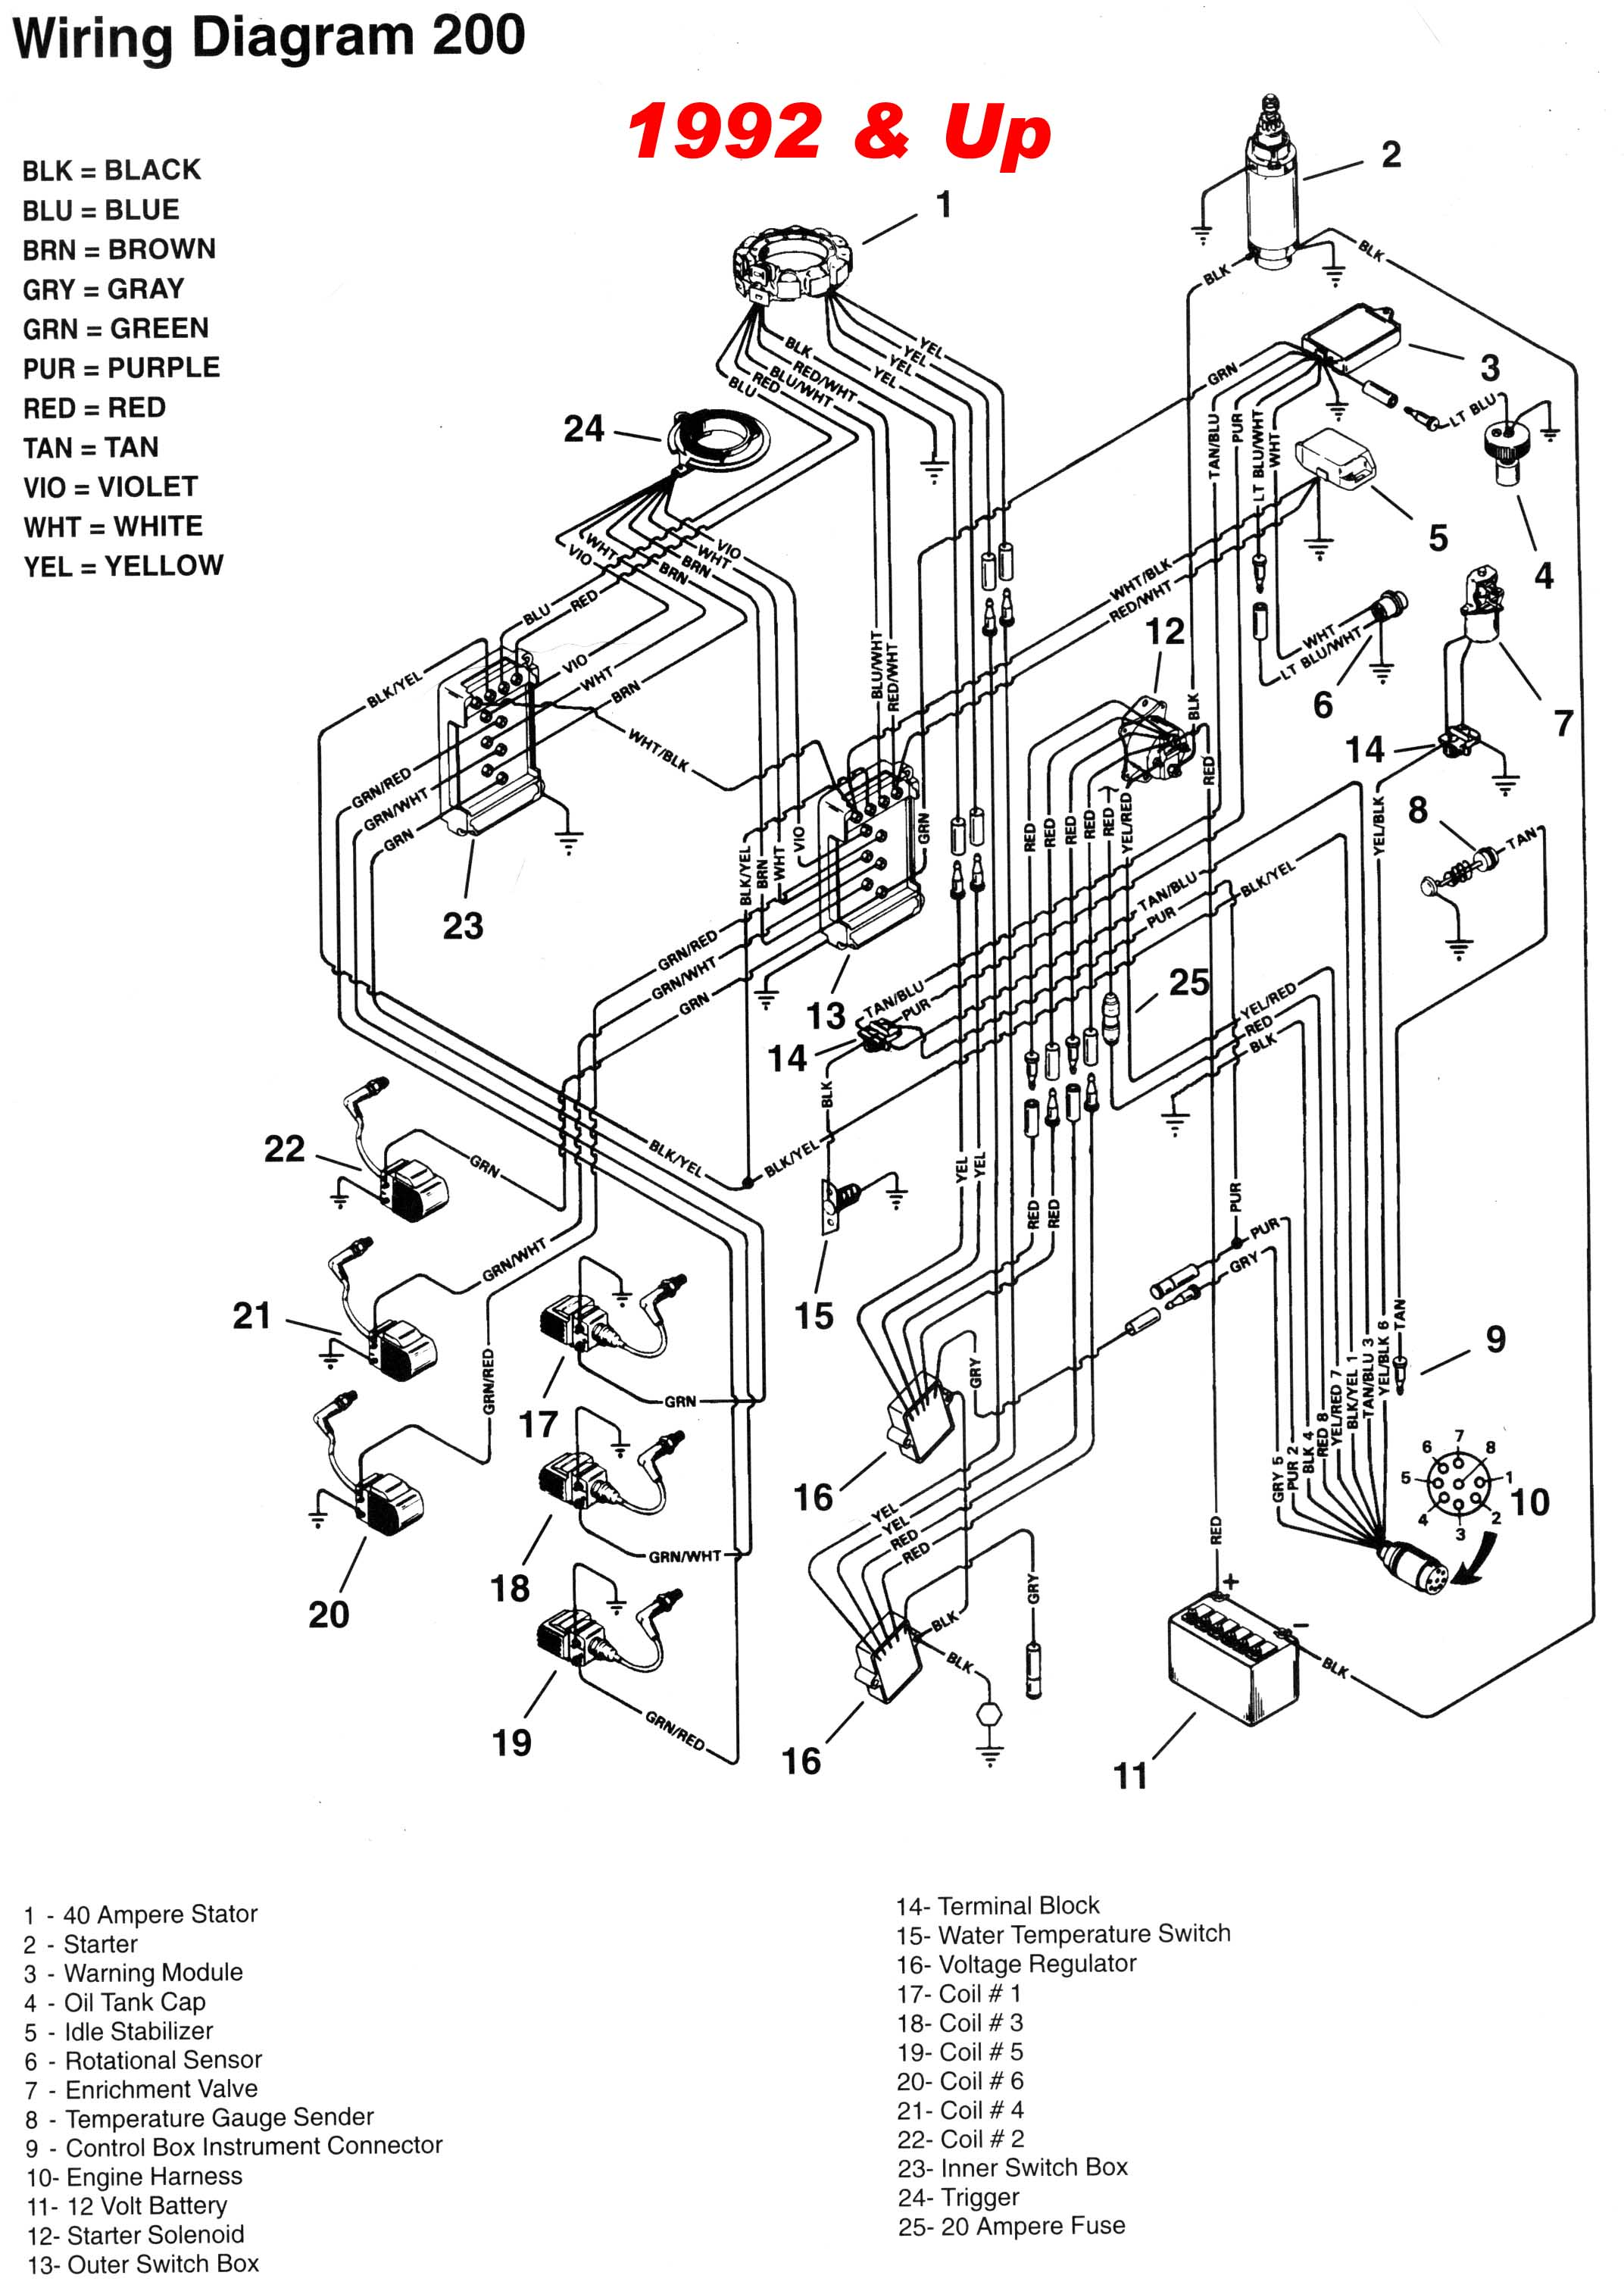 mercury_92up_200_wiring mercury outboard 2 5 and 3 0l v6 and gearcase faq mercury outboard gauge wiring diagram at gsmx.co